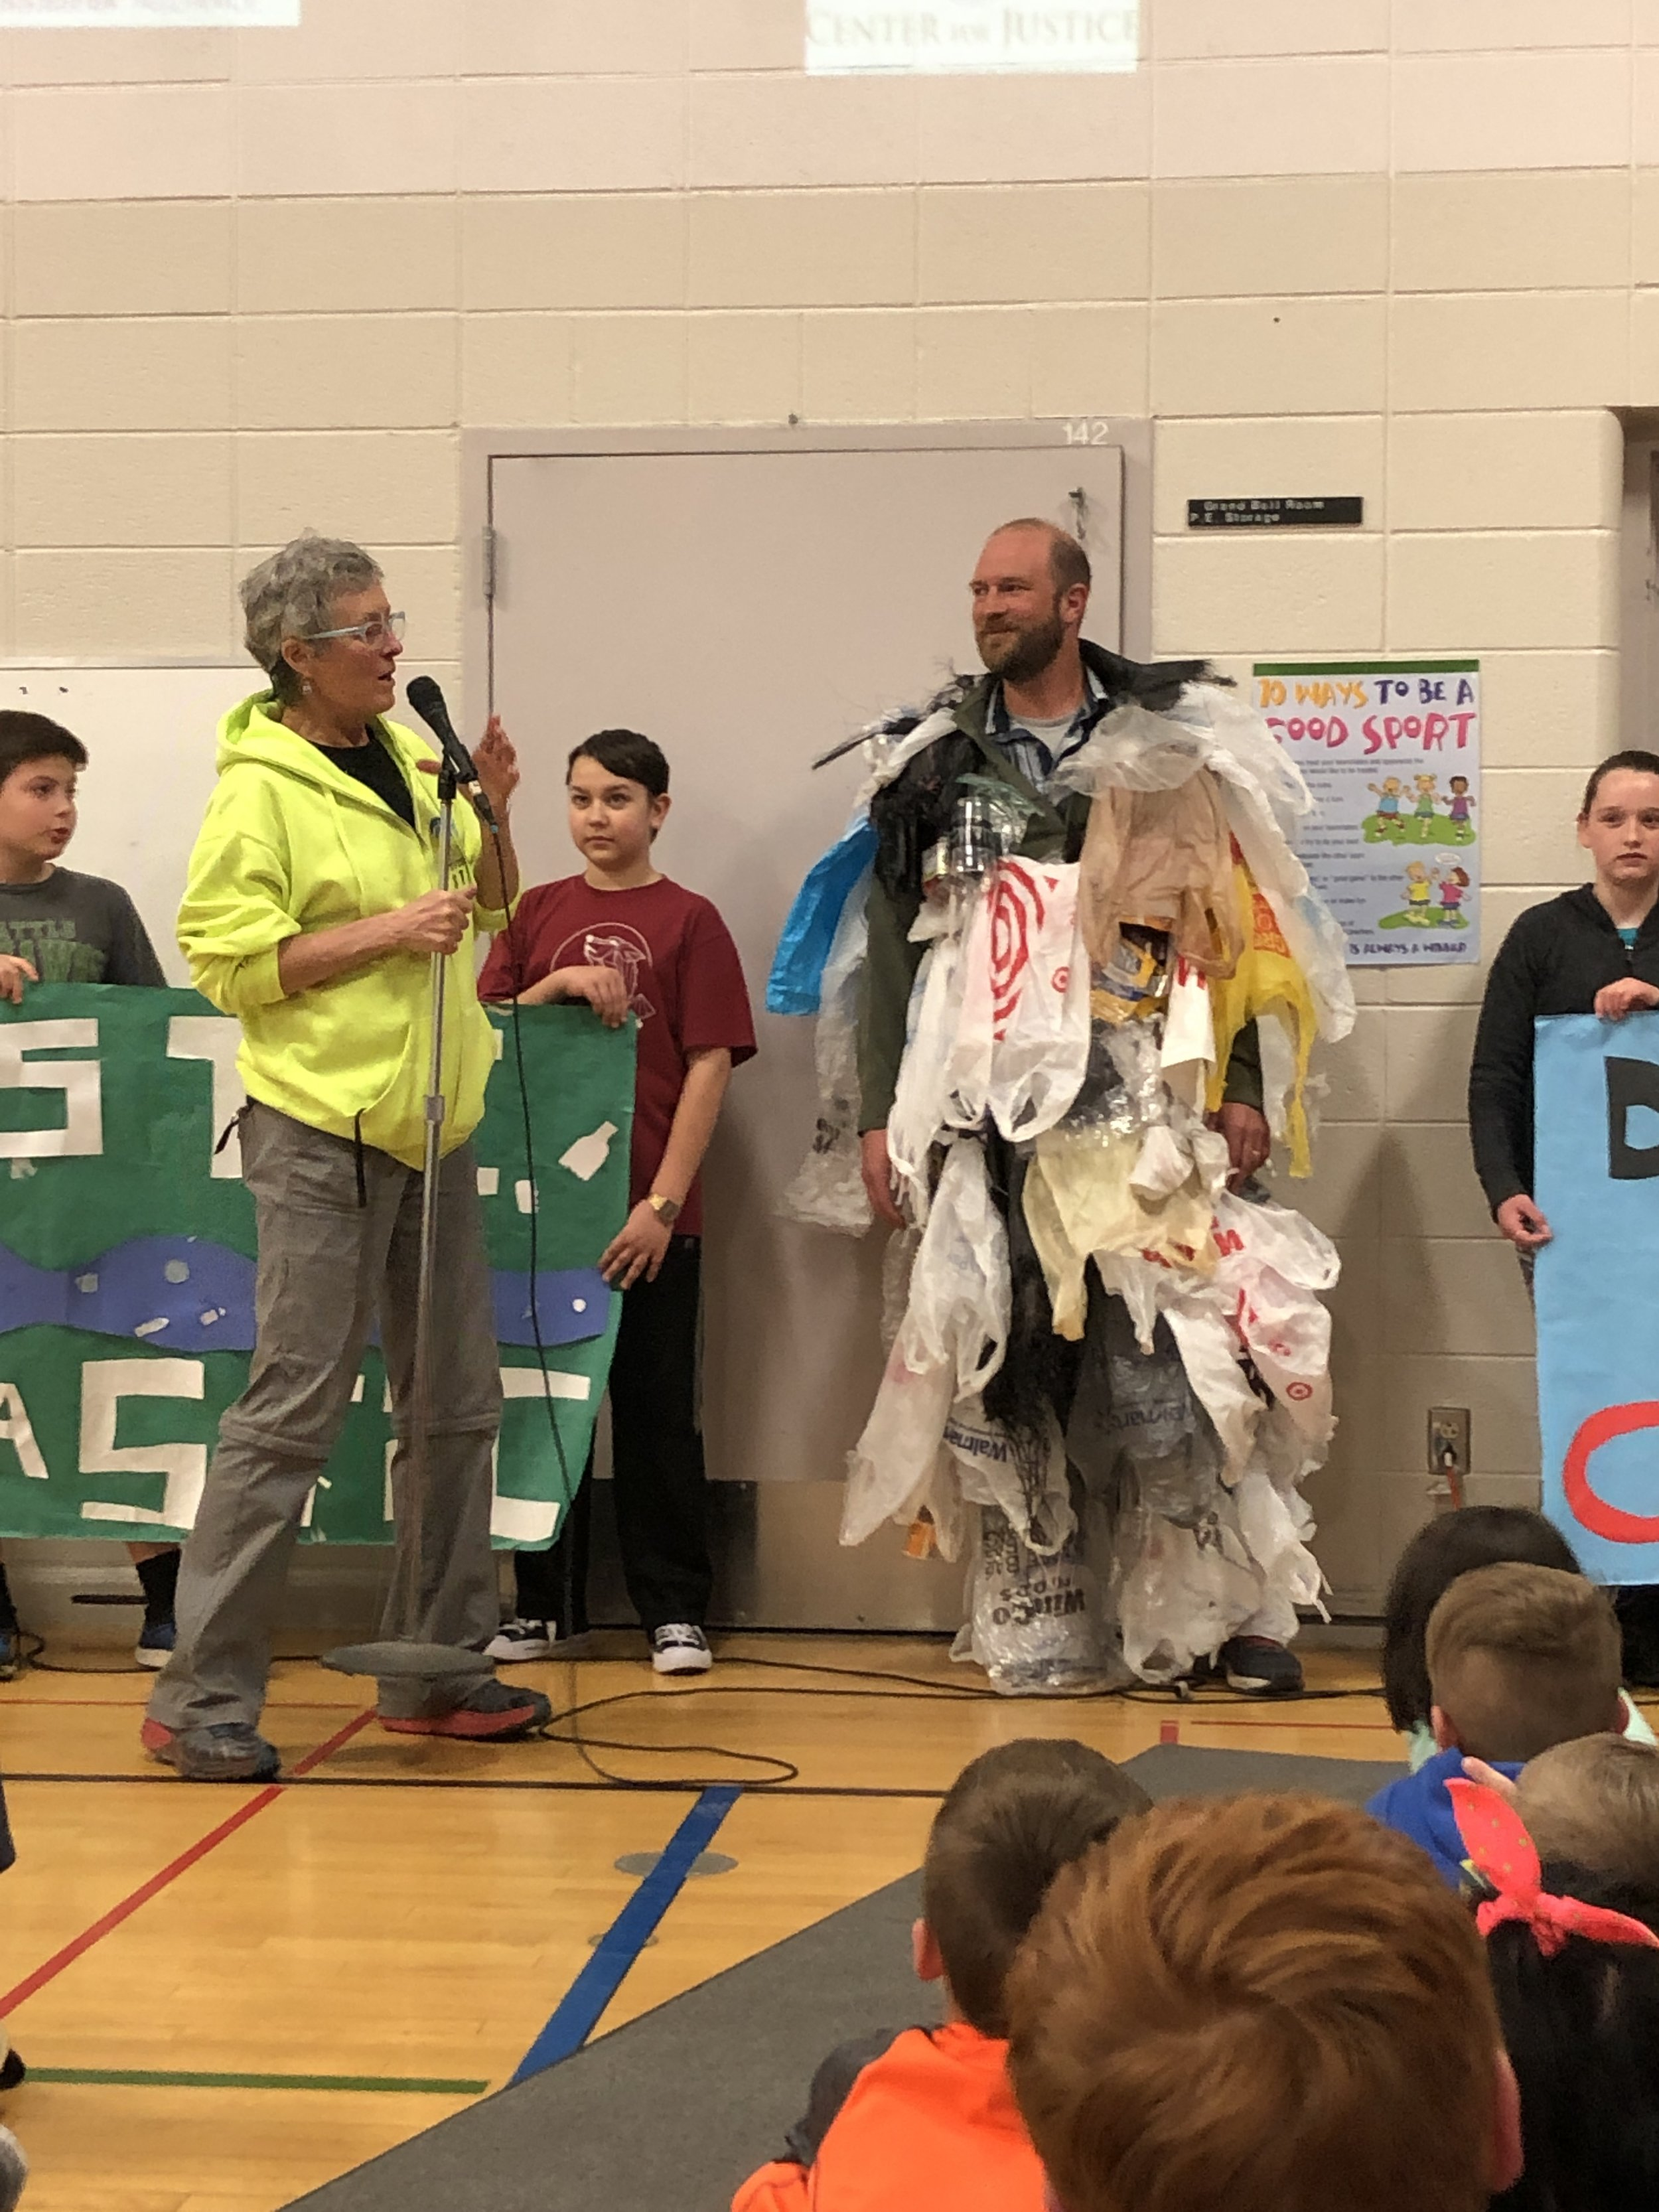 The kids at Summit School found a good use for all the trash they collected on their river clean up.  A trash monster costume!